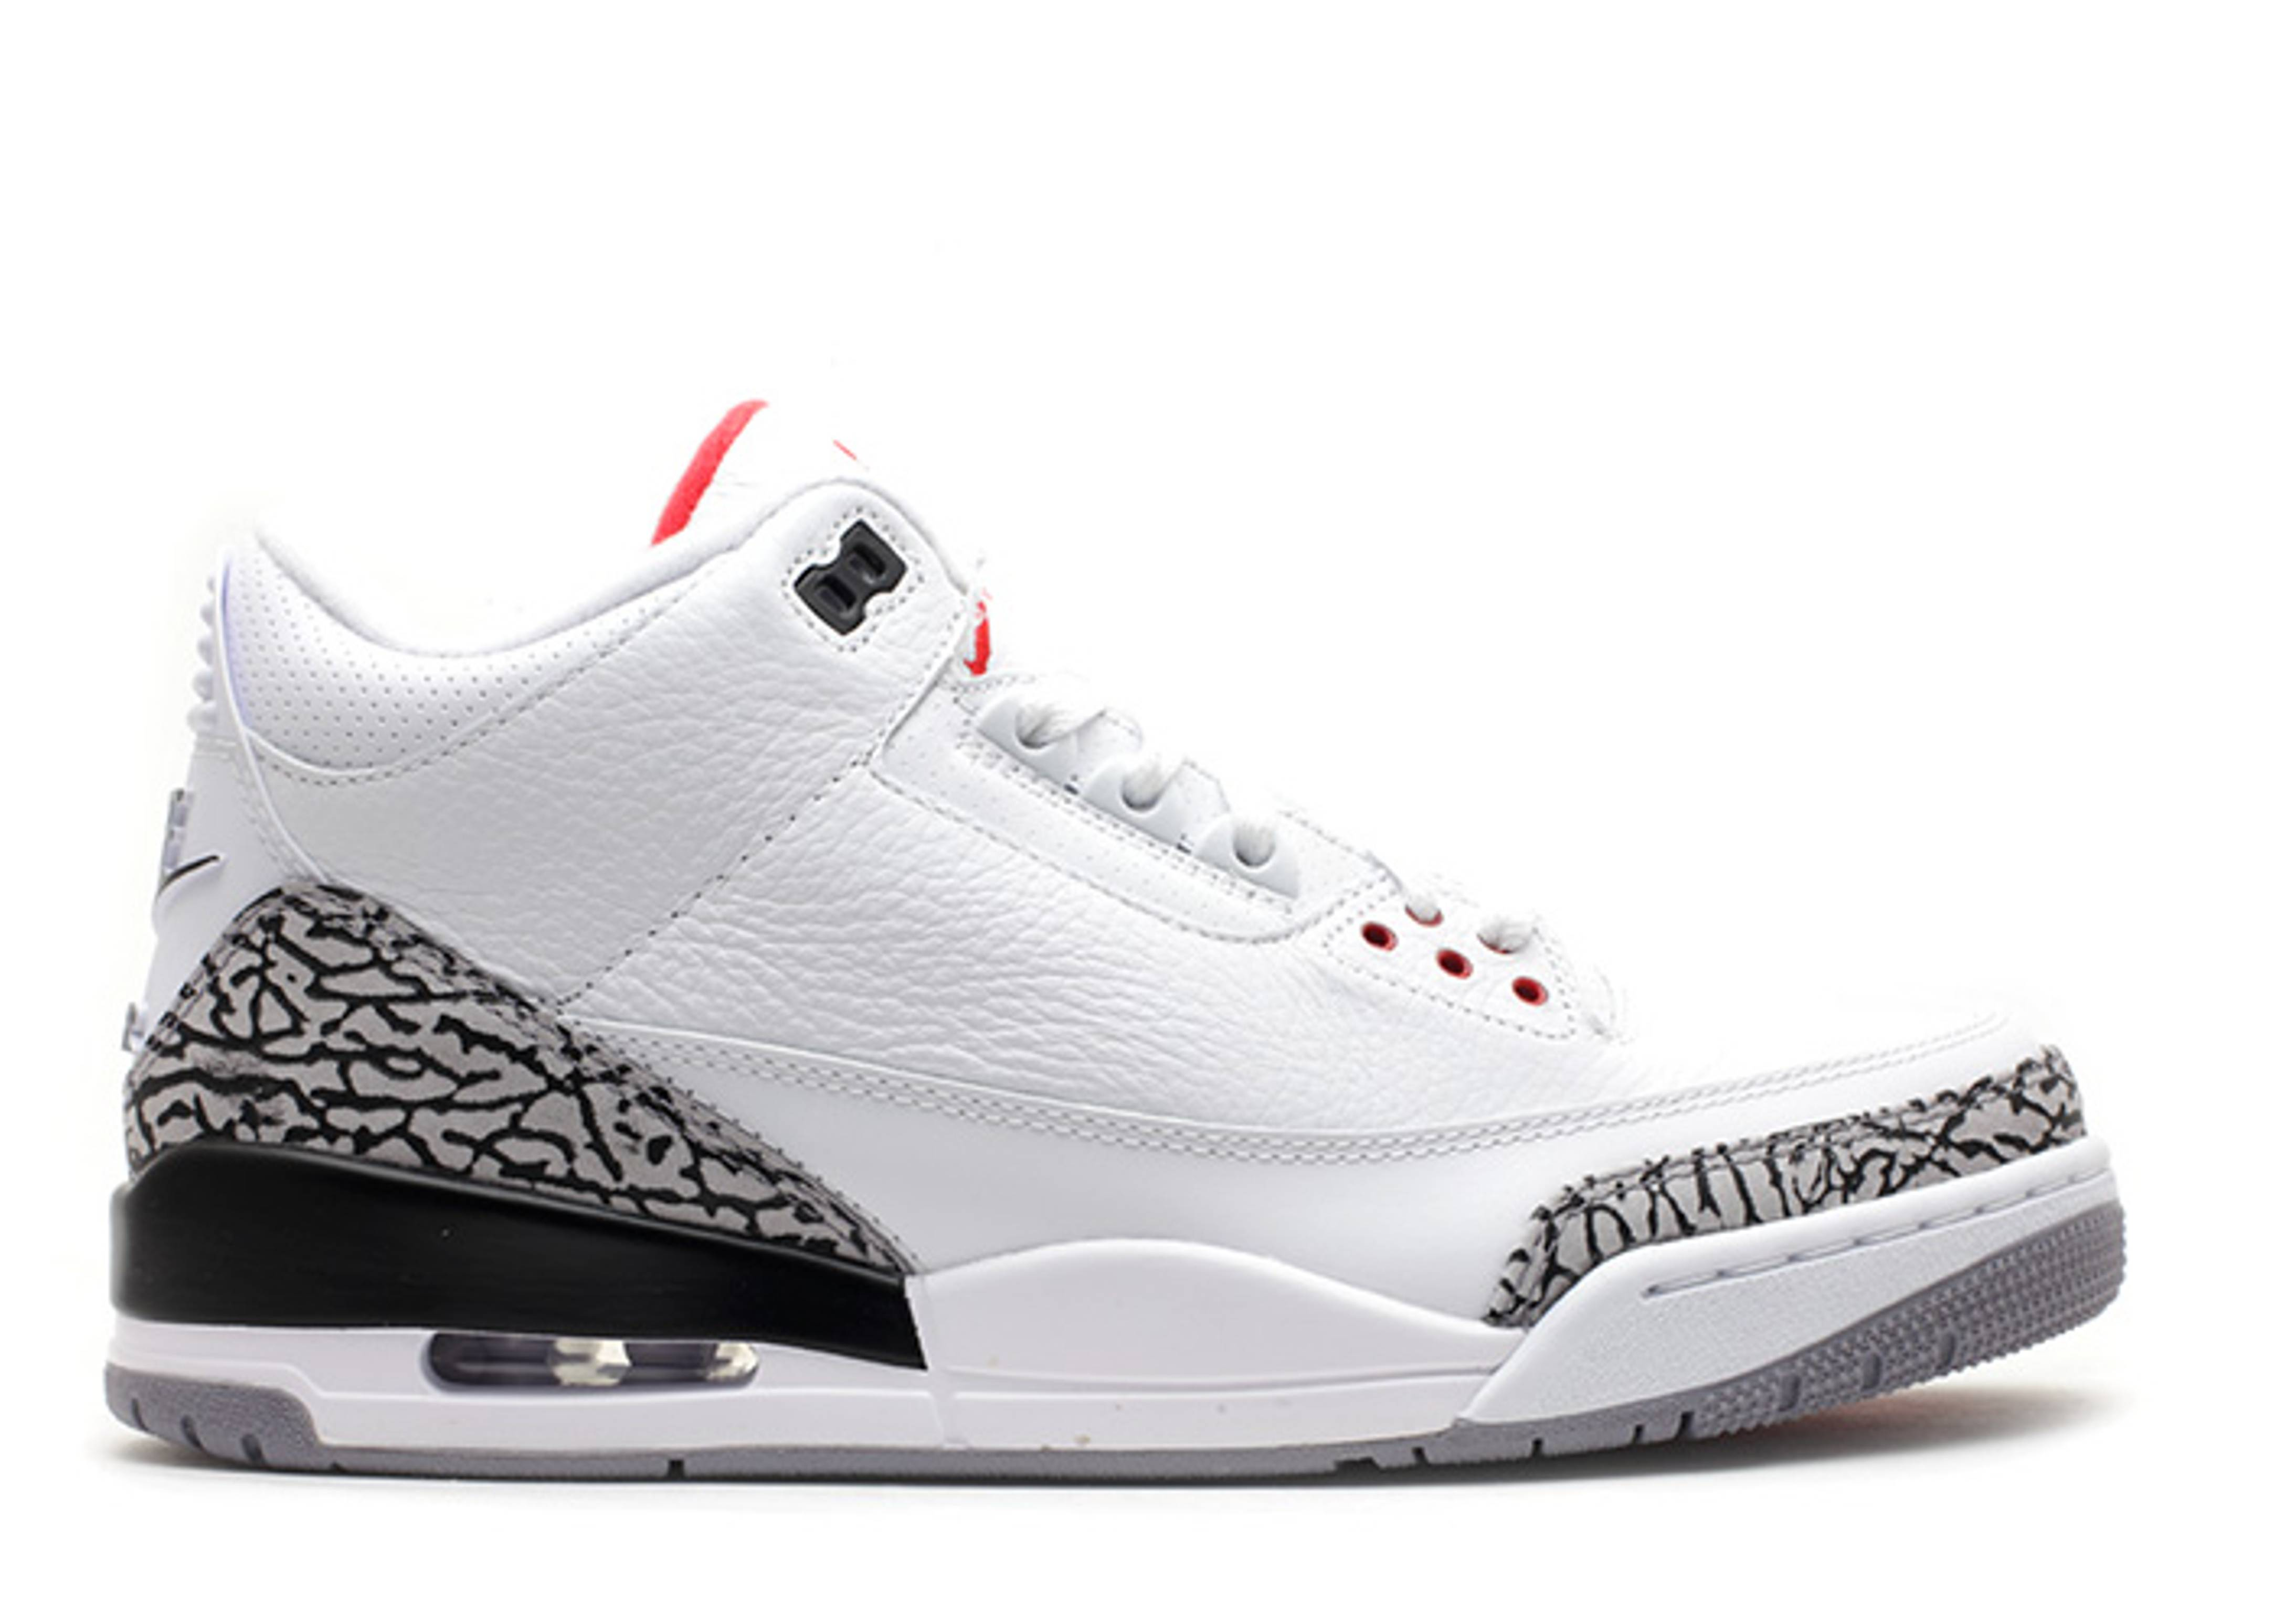 nike shox tw premium - air jordan 3 retro 88 - white/fire red-cement grey-black | Flight Club